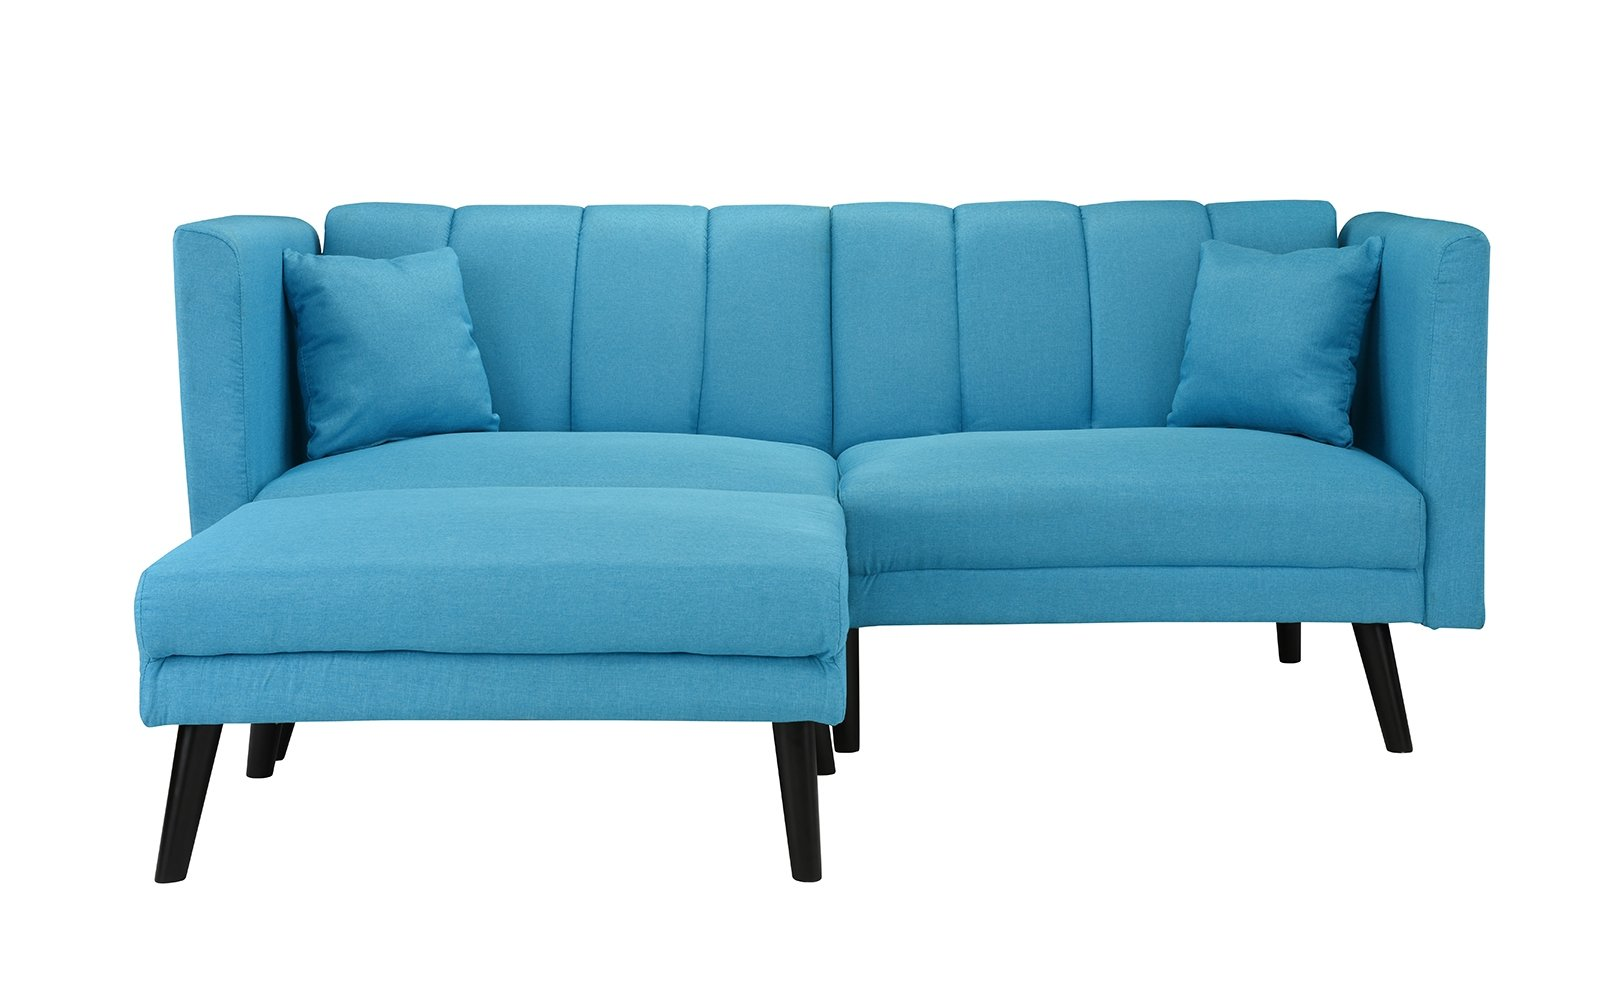 Details about Mid-Century Modern Linen Futon Sofa Bed, Classic Living Room  Couch, Sky Blue